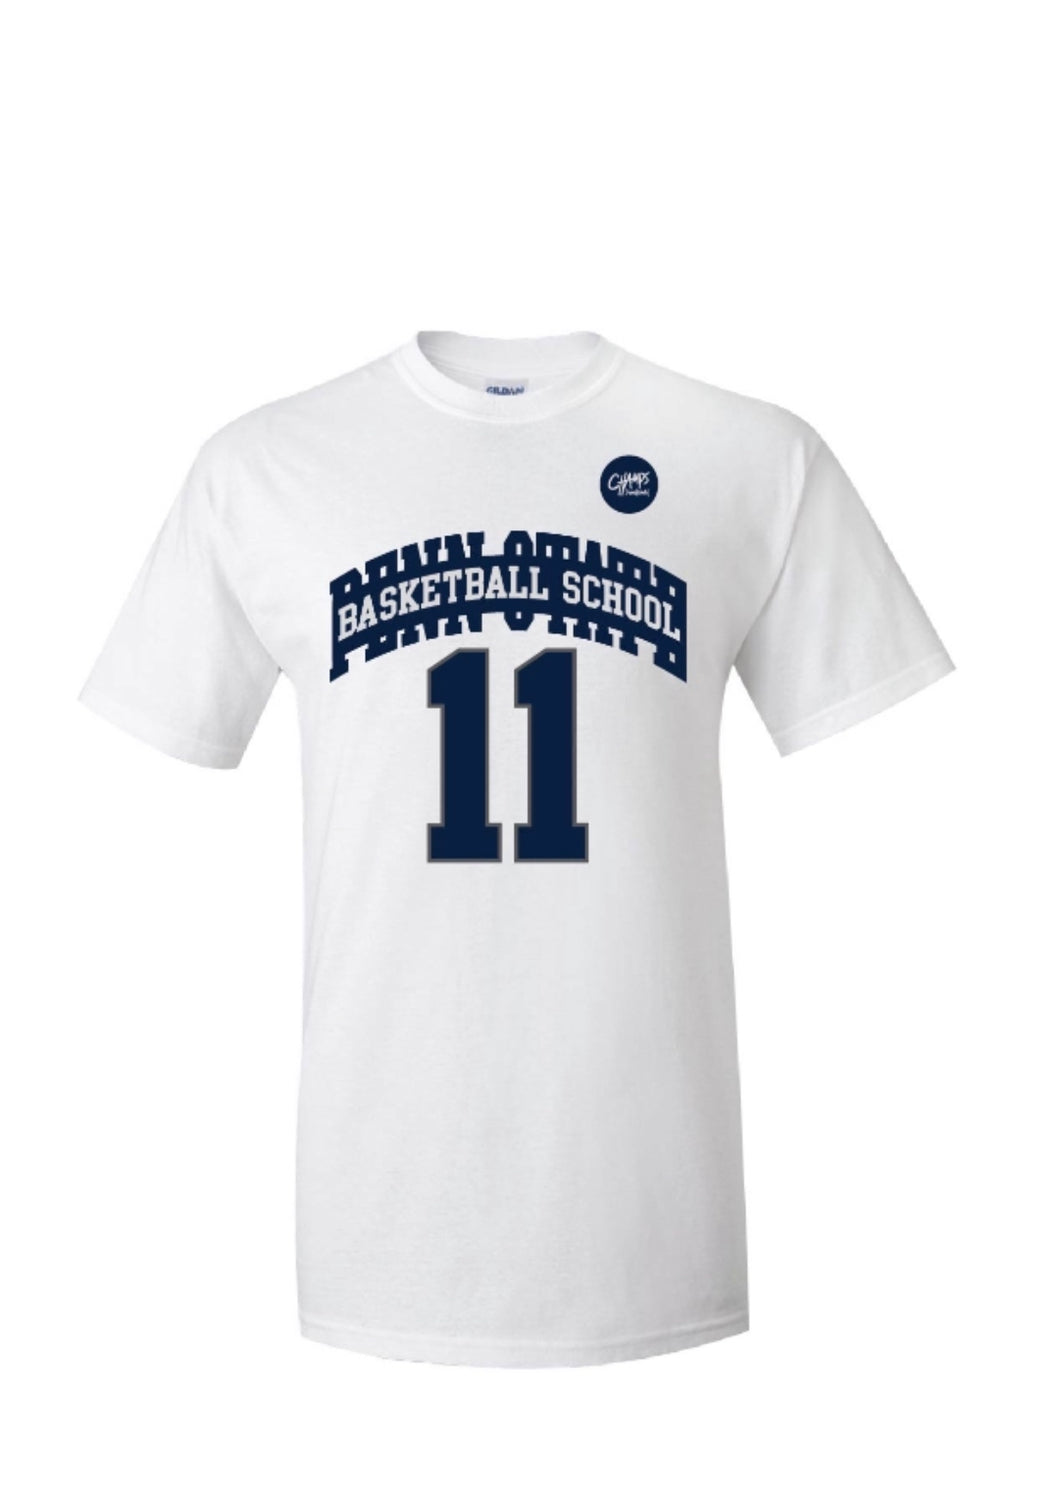 Basketball School Tee